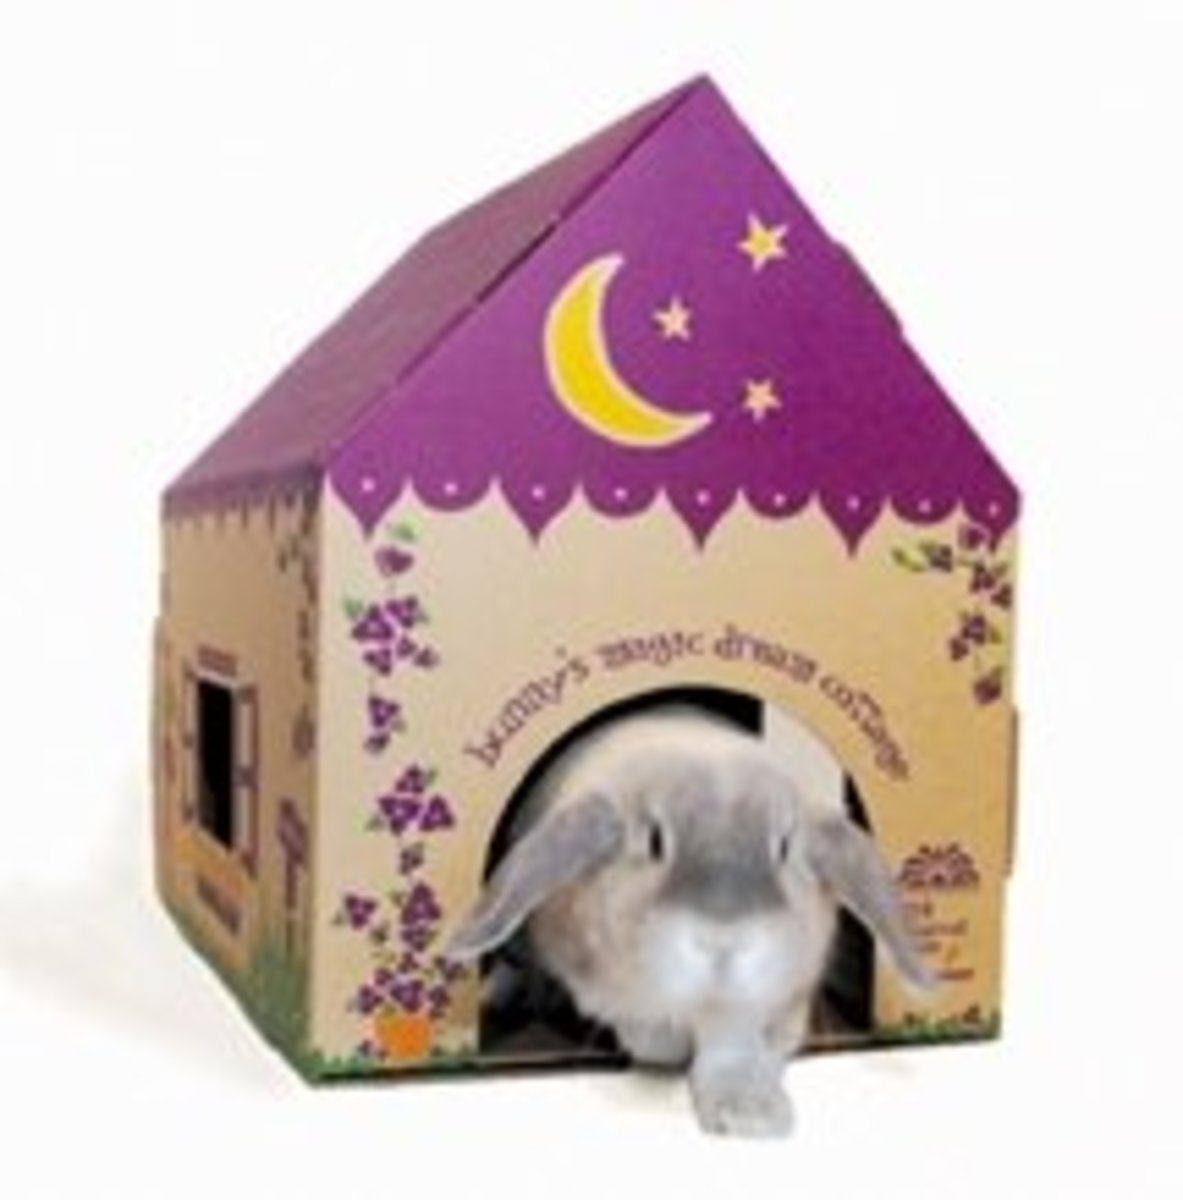 Indoor Rabbit Homes - For the Happiness of Your Rabbit